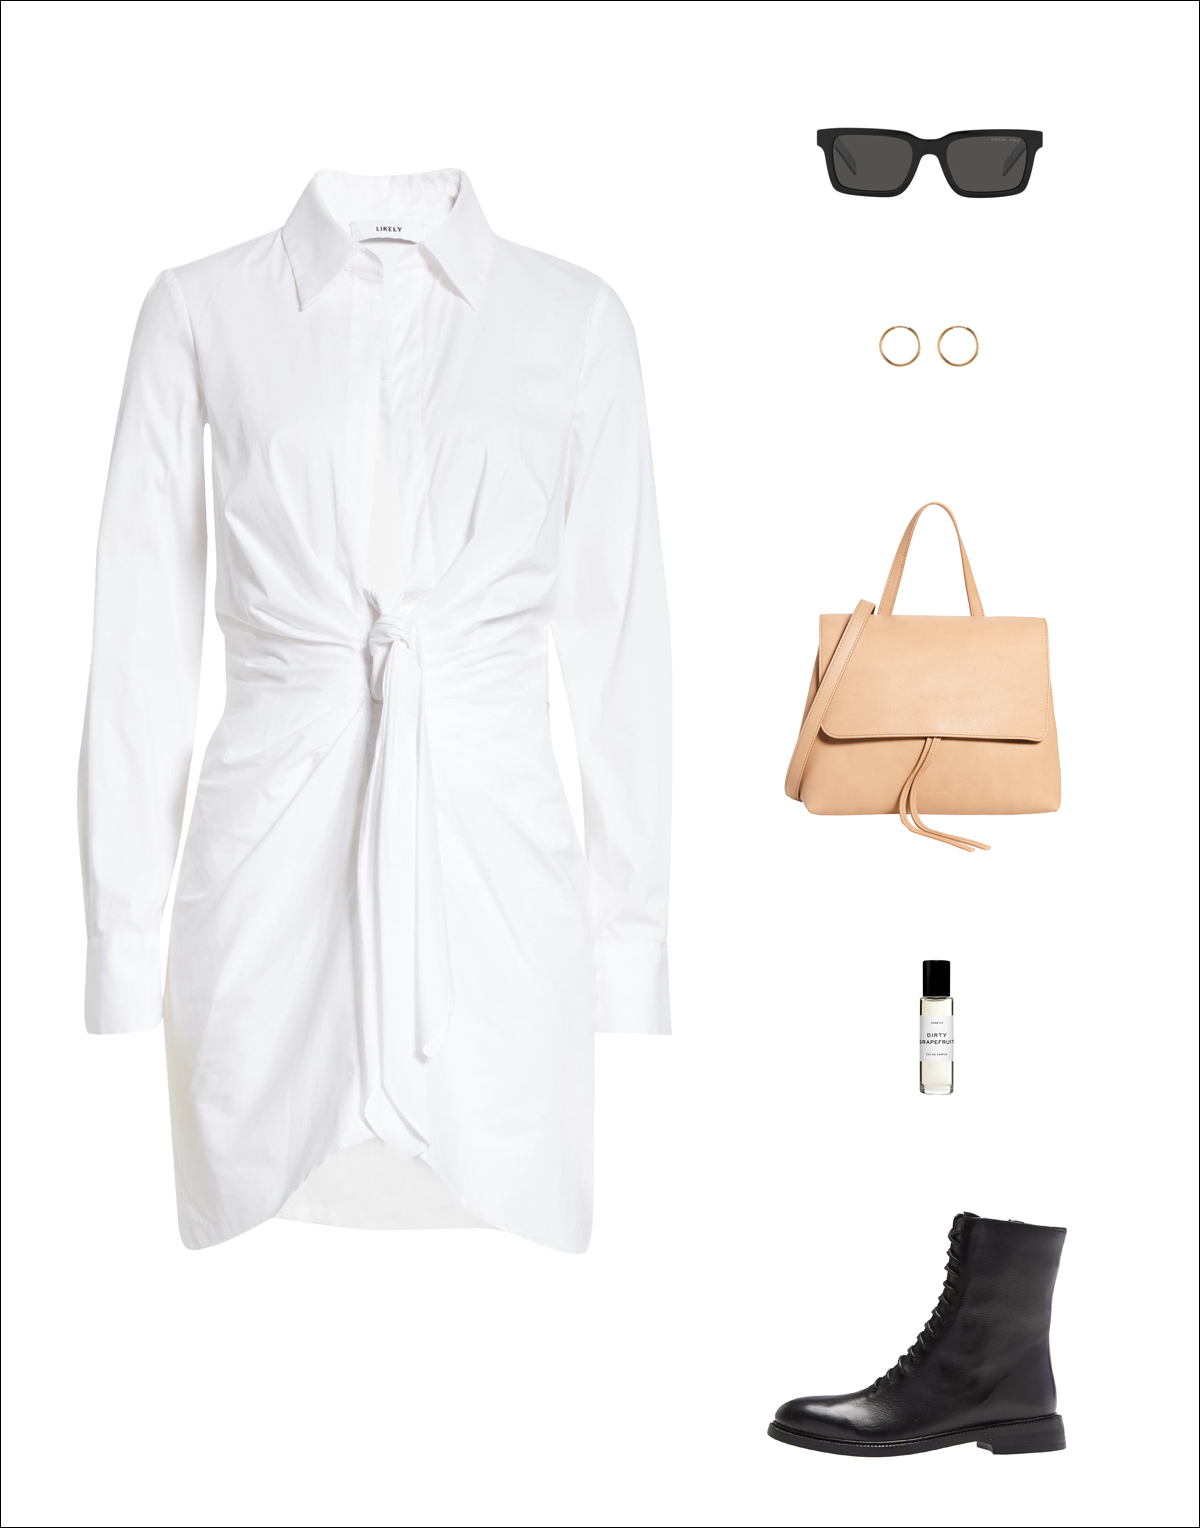 How to Wear Shirtdress for Spring 2021 —Outfit idea with white tie-front shirt dress, black rectangular sunglasses, gold hoop earrings, a neutral minimalist Mansur Gavriel Mini Lady bag, and black lace-up boots